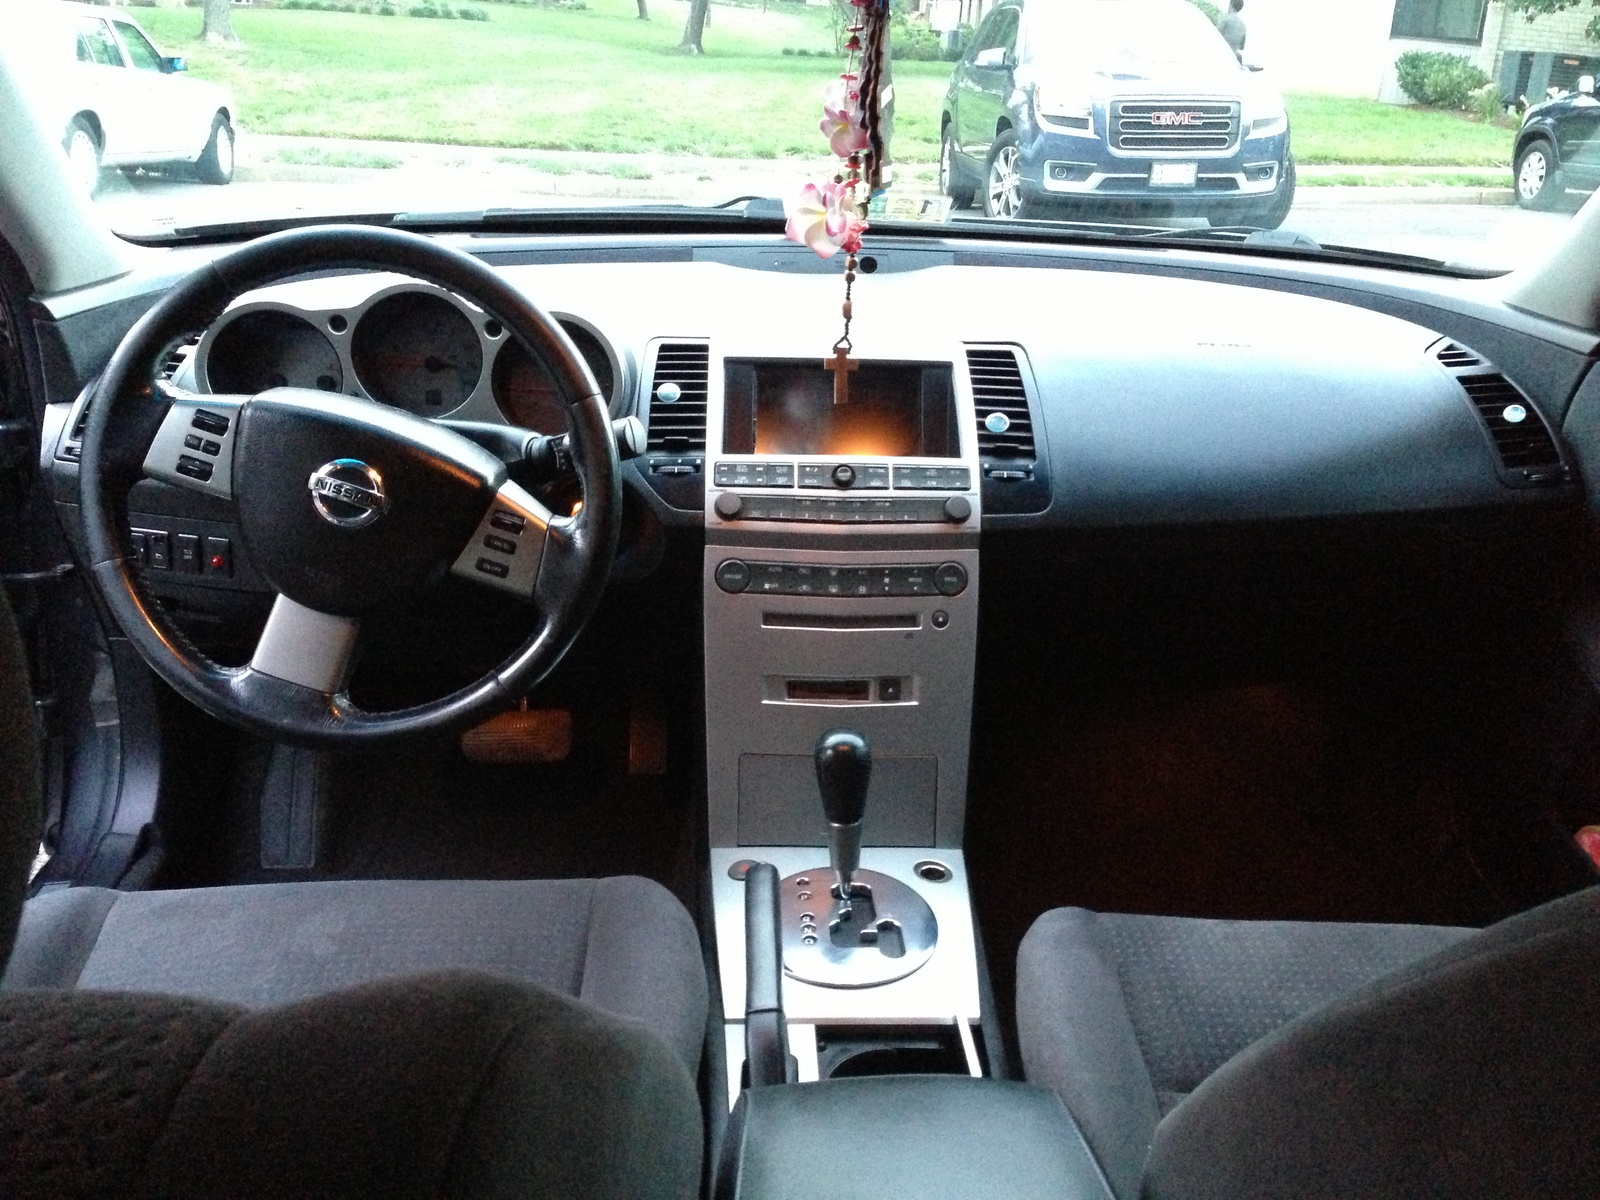 2006 nissan maxima interior photos